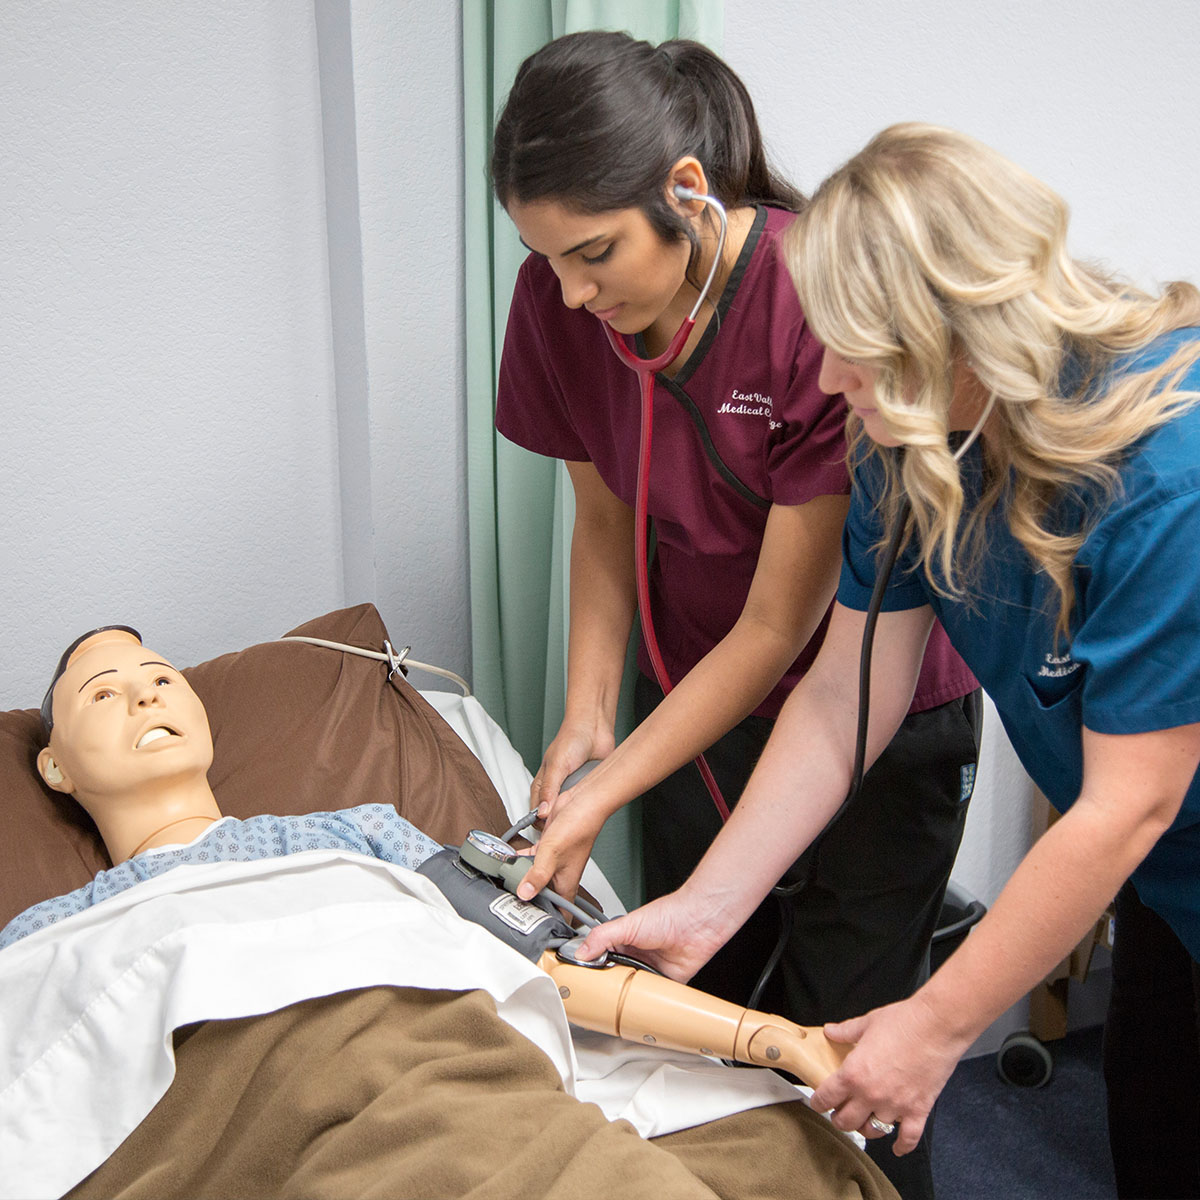 Patient Care Technician Tuition Cost